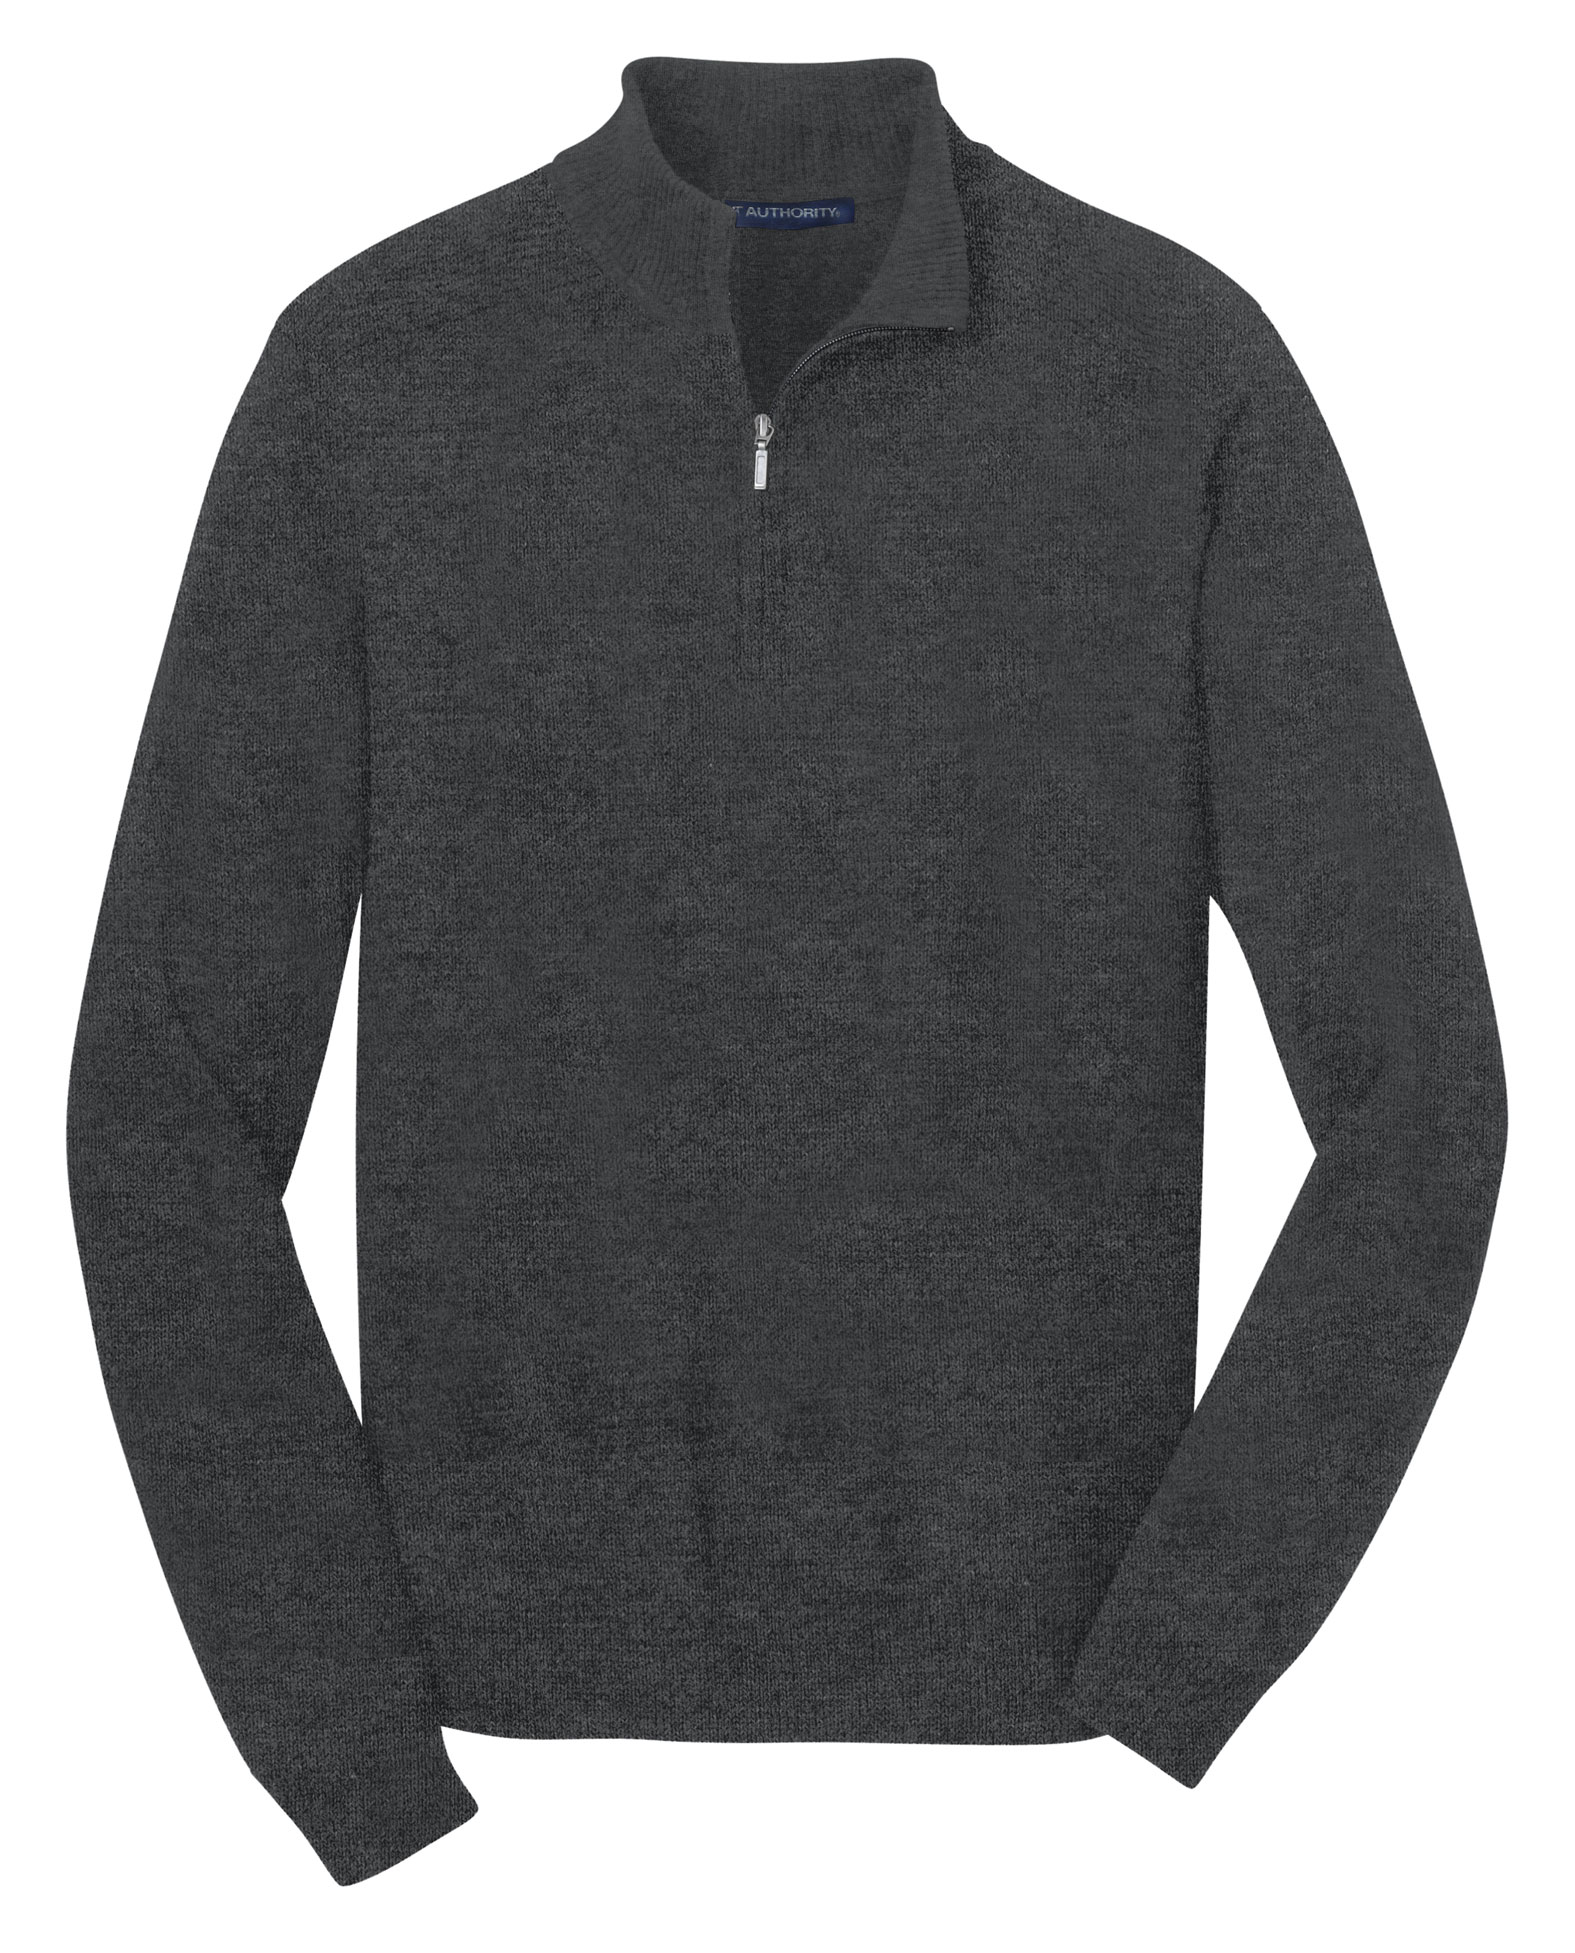 Mens 1/2-Zip Sweater